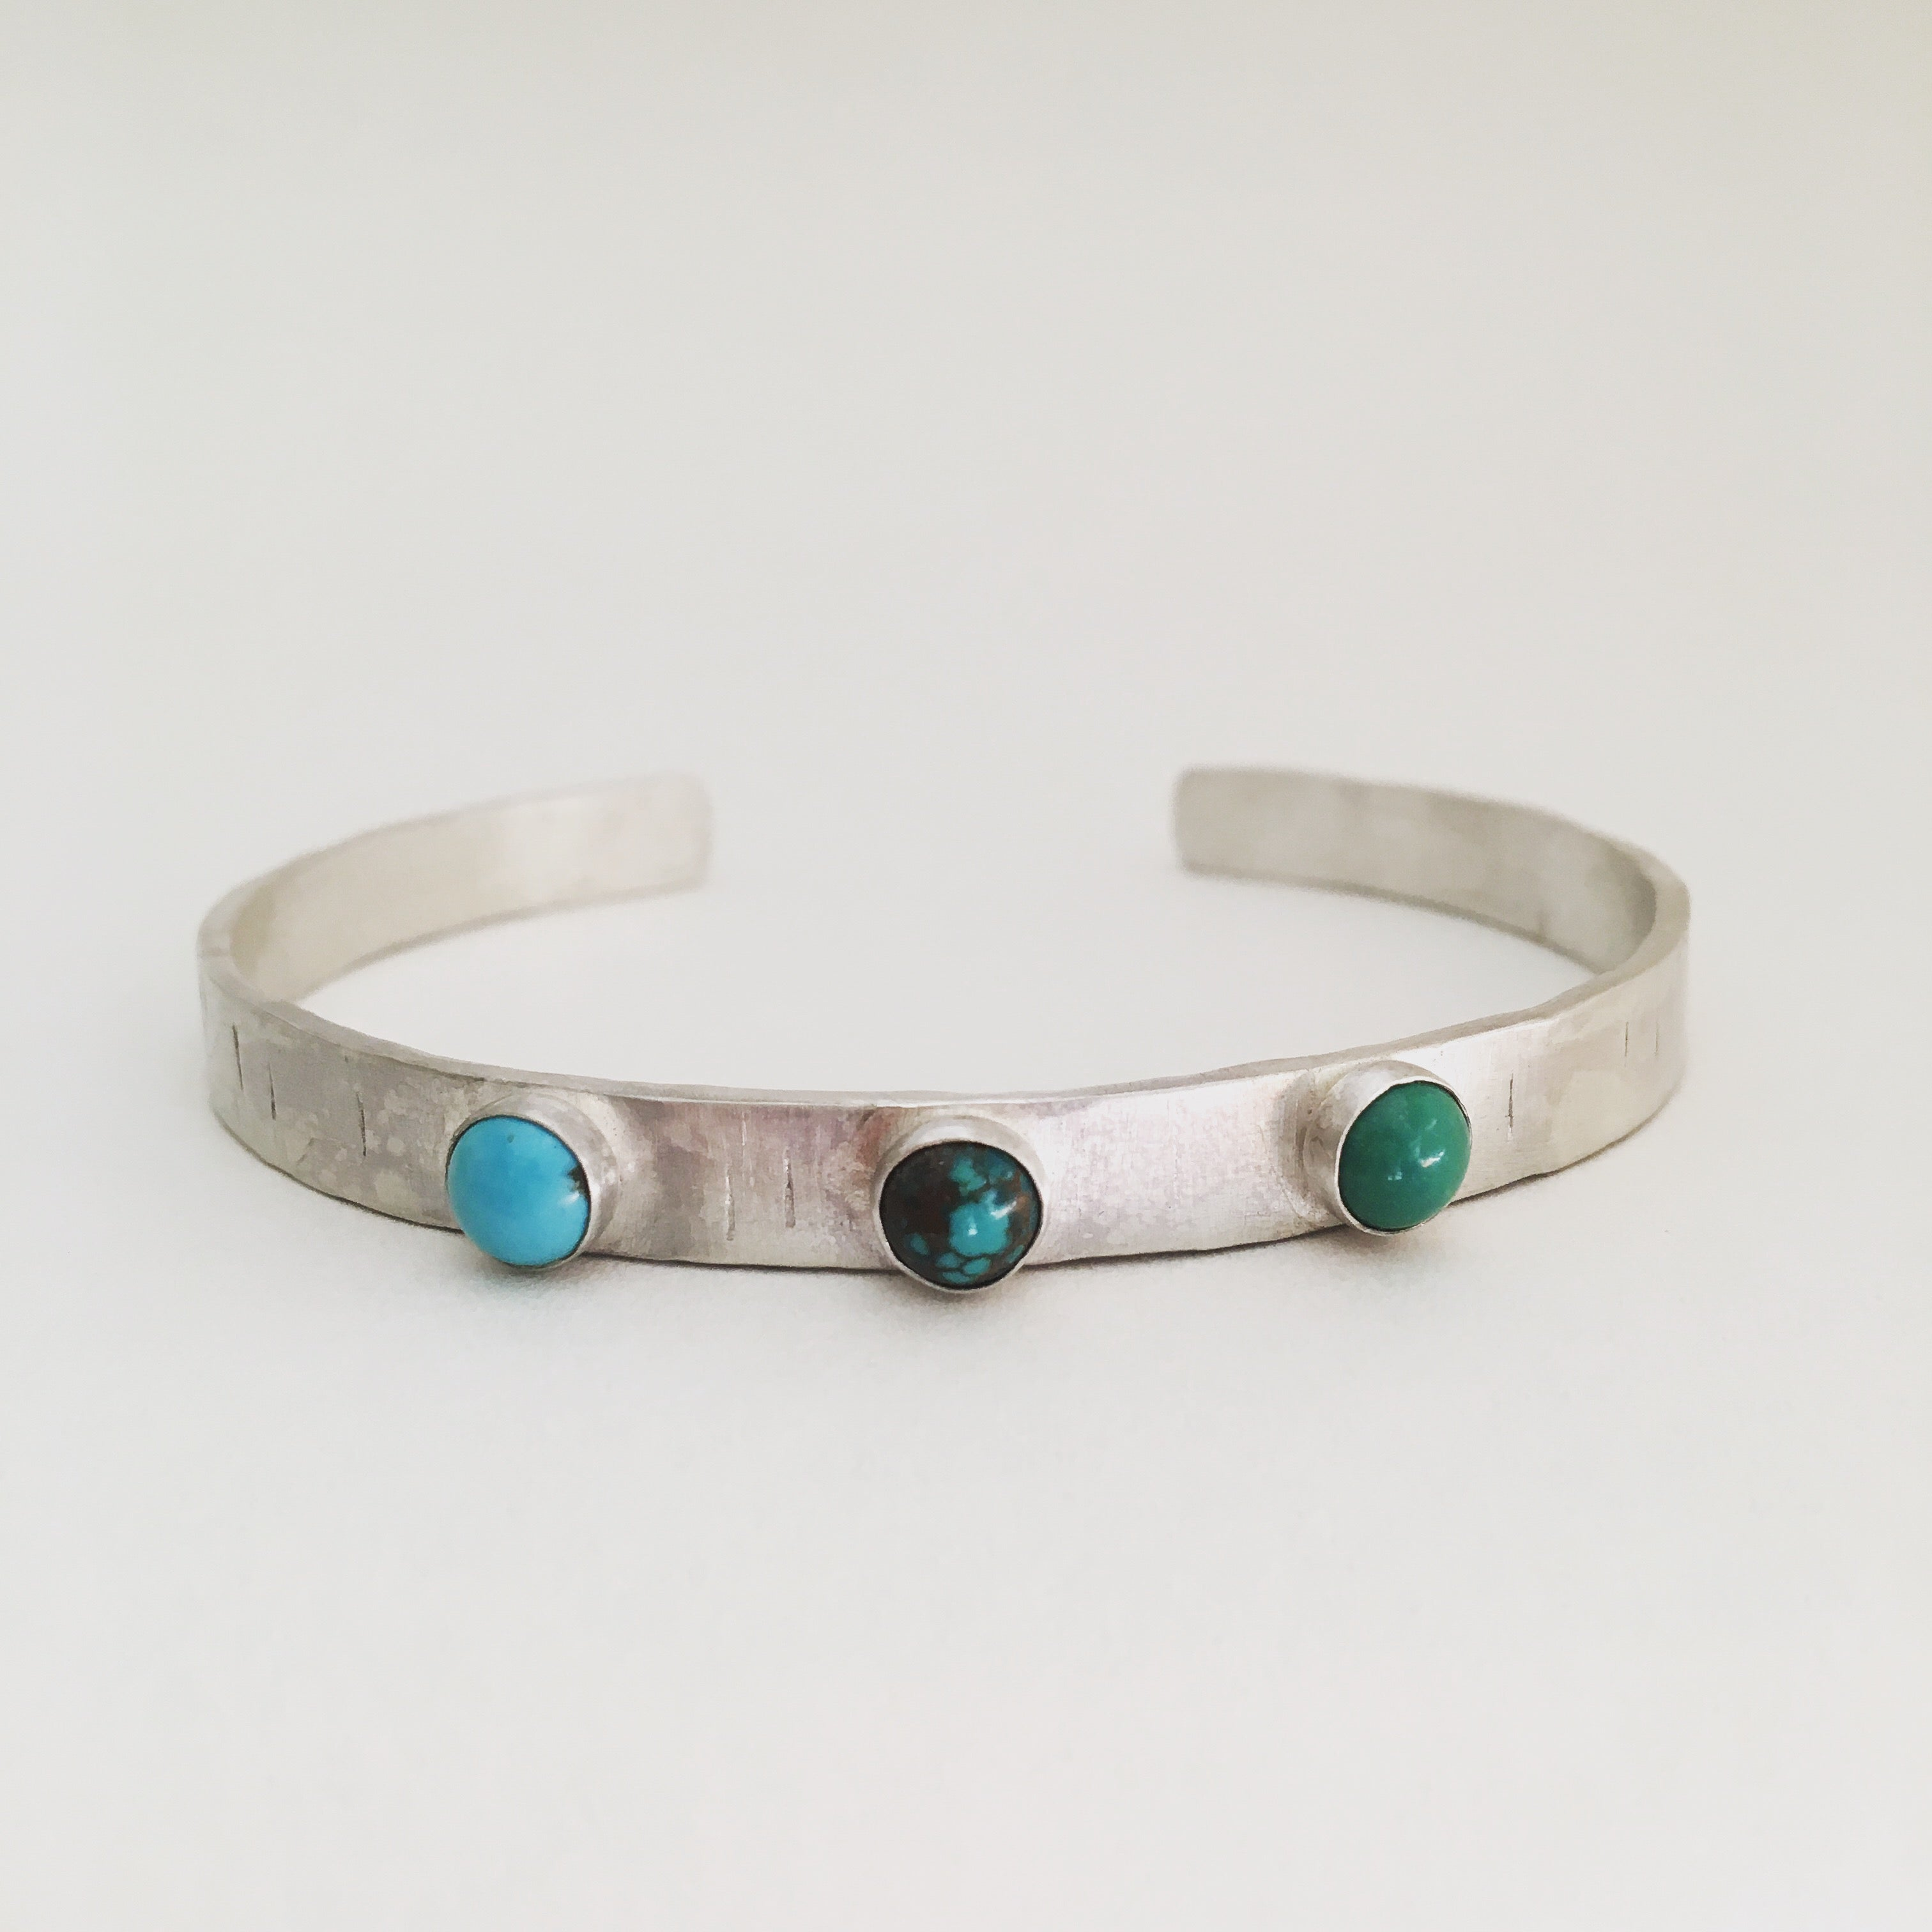 Turquoise and Sterling Silver Cuff OOAK Handmade Turquoise Cabochon and Textured Sterling Silver Stackable Cuff Bracelet